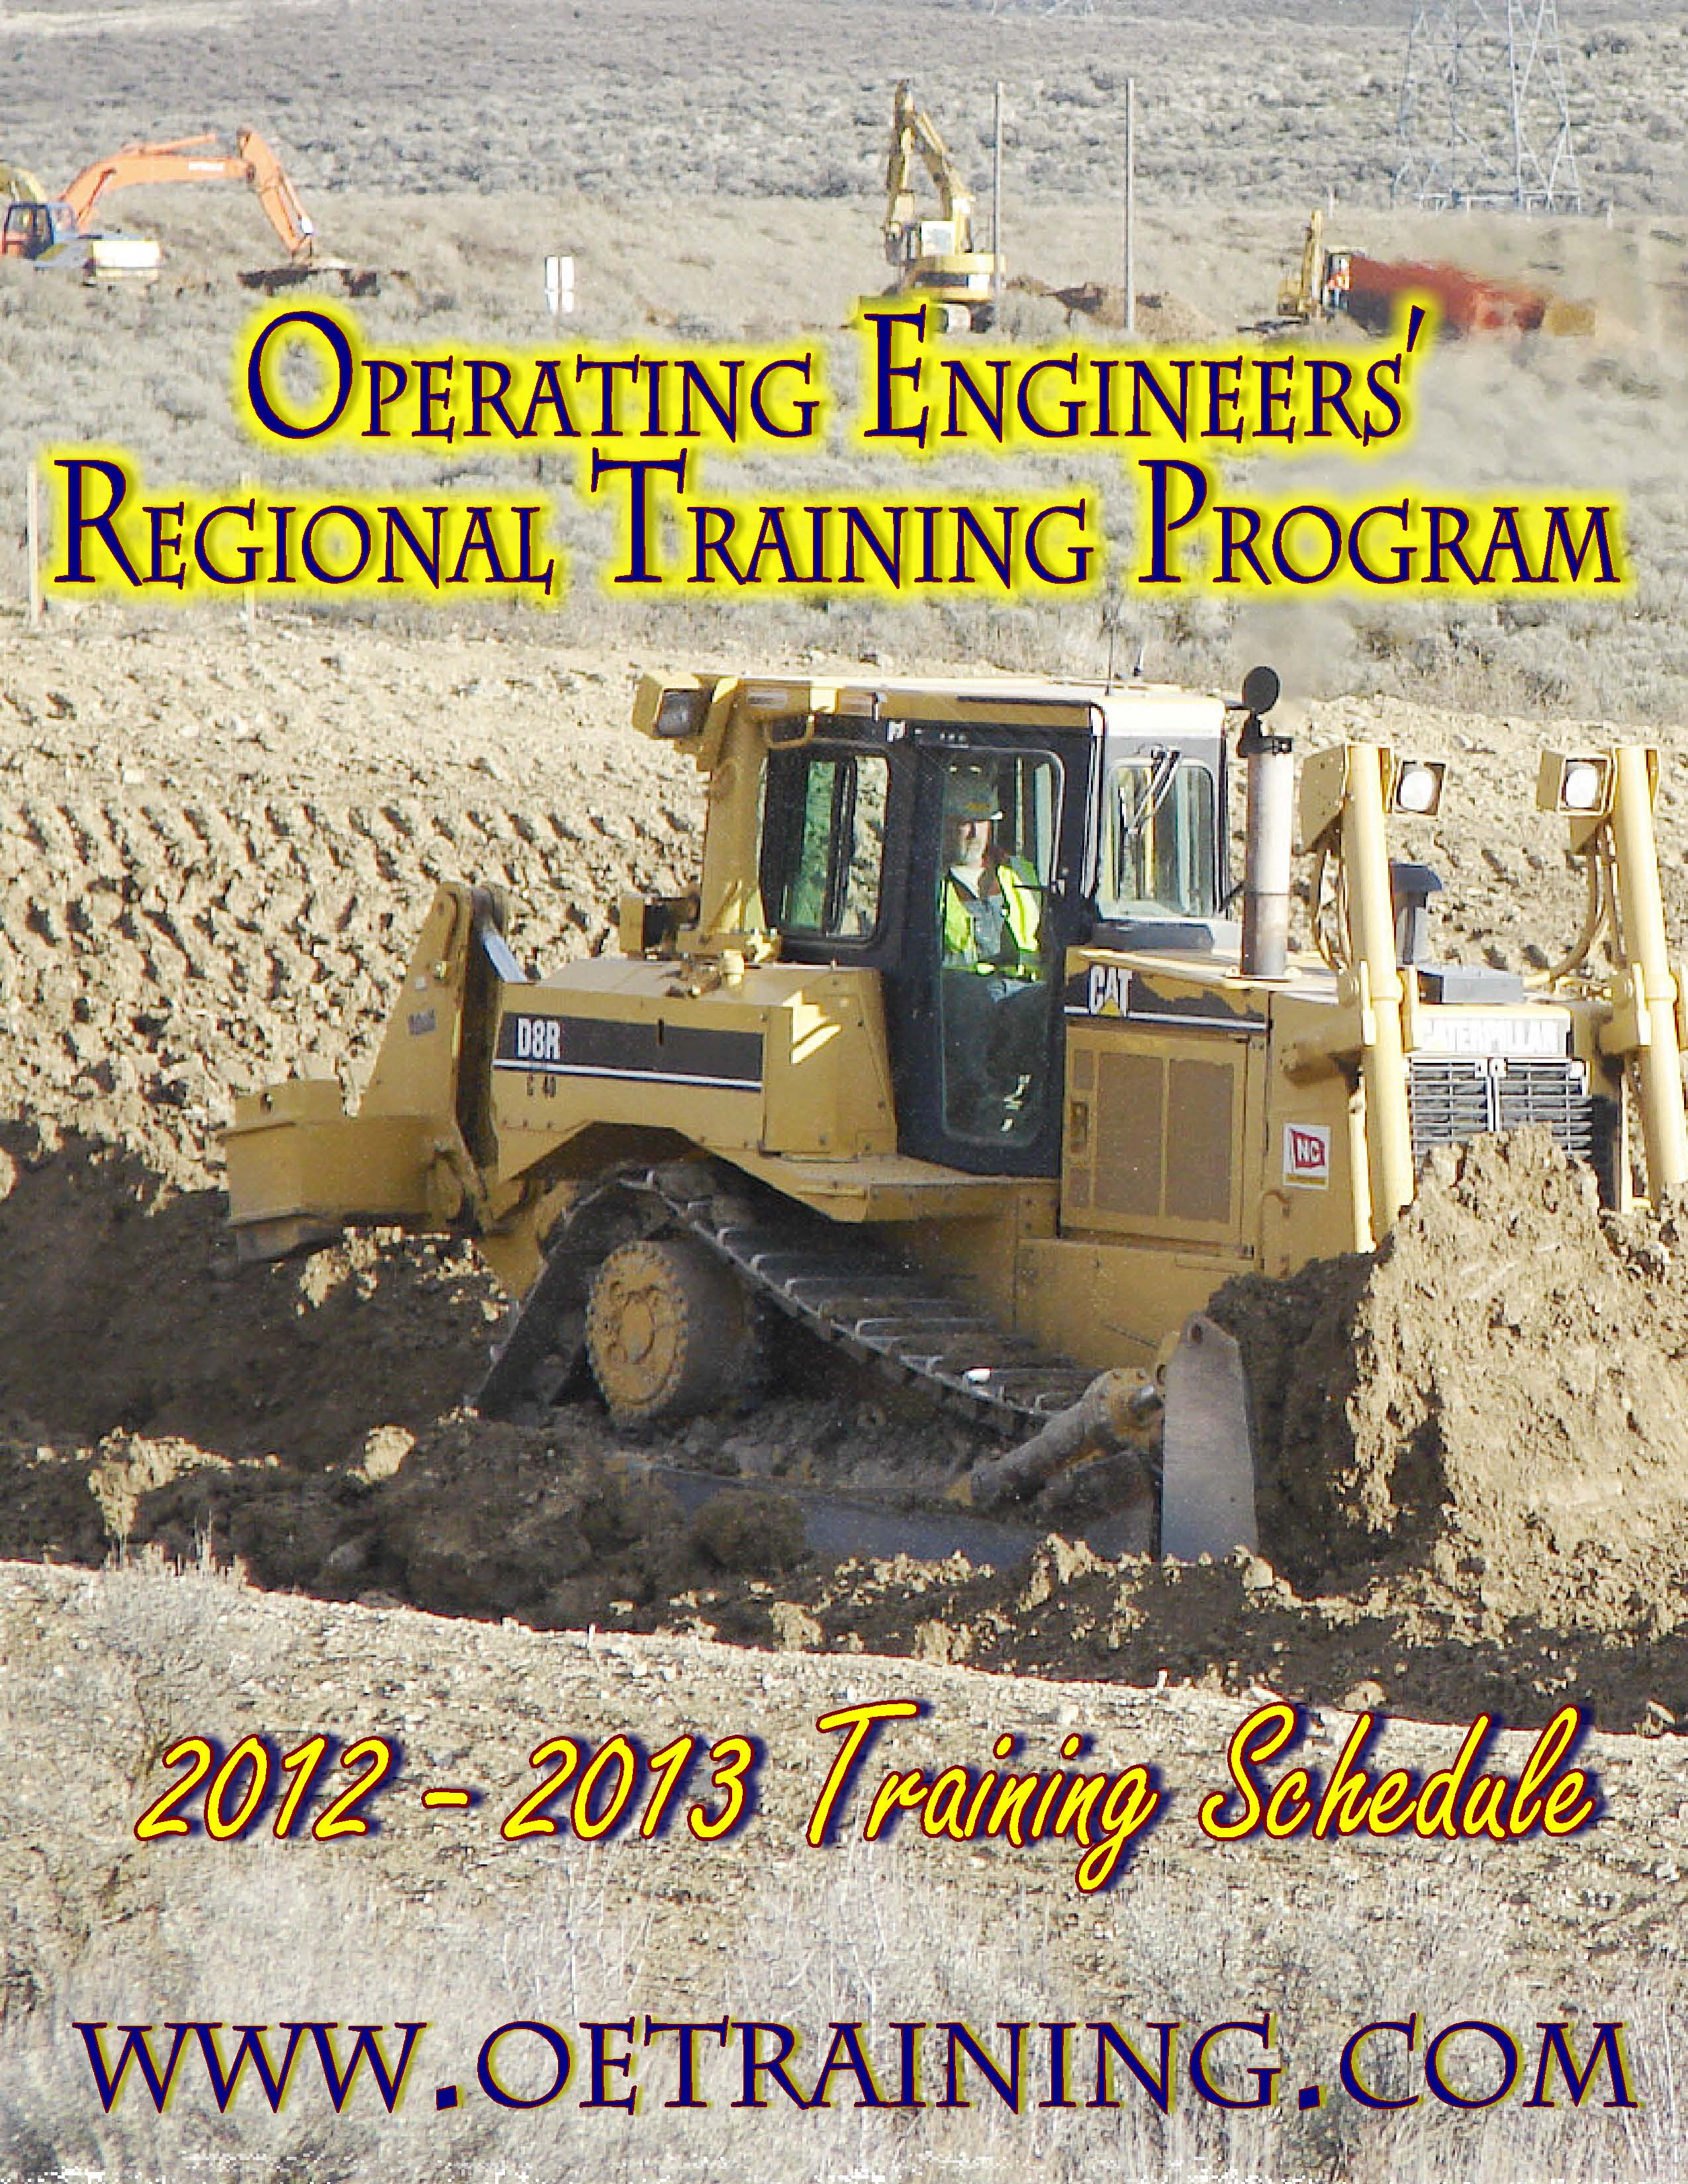 2012 - 2013 Training Schedule